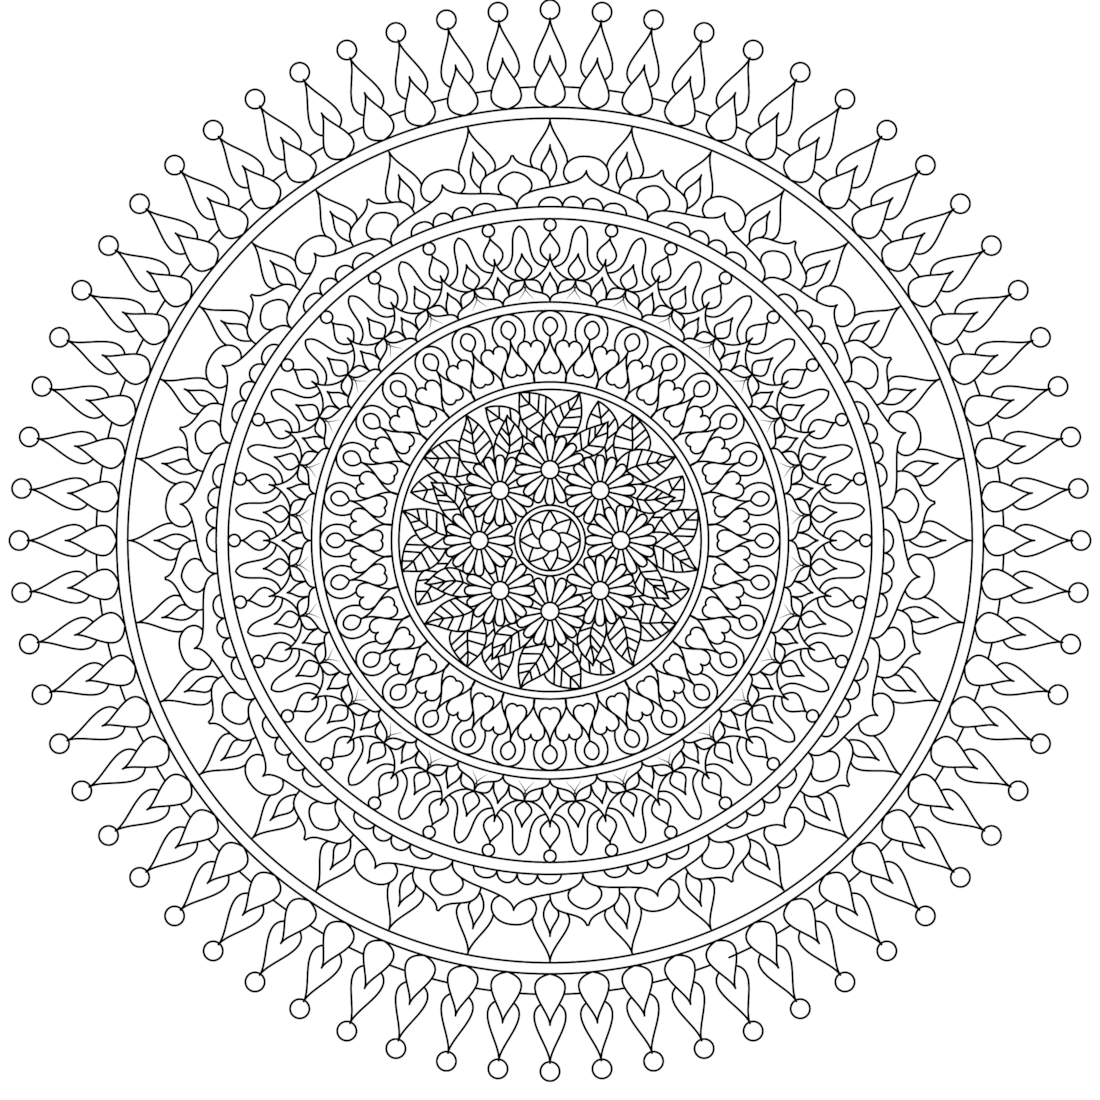 best hd moon mandala coloring pages drawing big collection free printable coloring. Black Bedroom Furniture Sets. Home Design Ideas